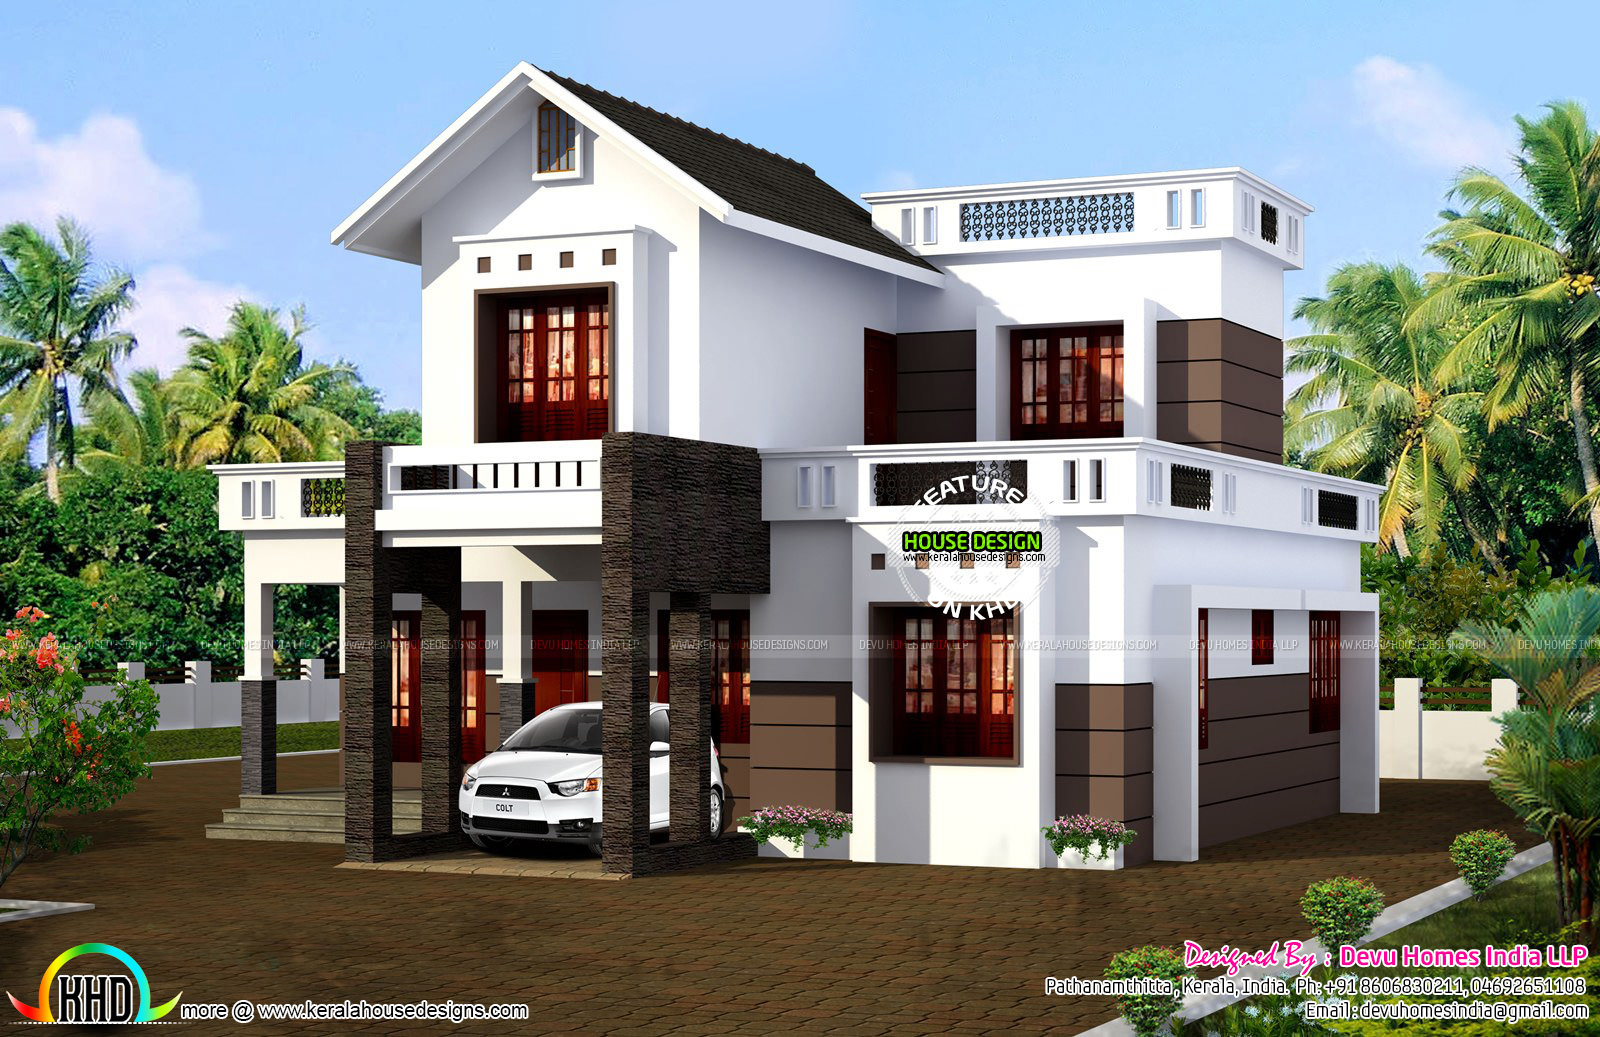 Simple 1524 sq ft house plan kerala home design and floor plans - Simple modern house ...